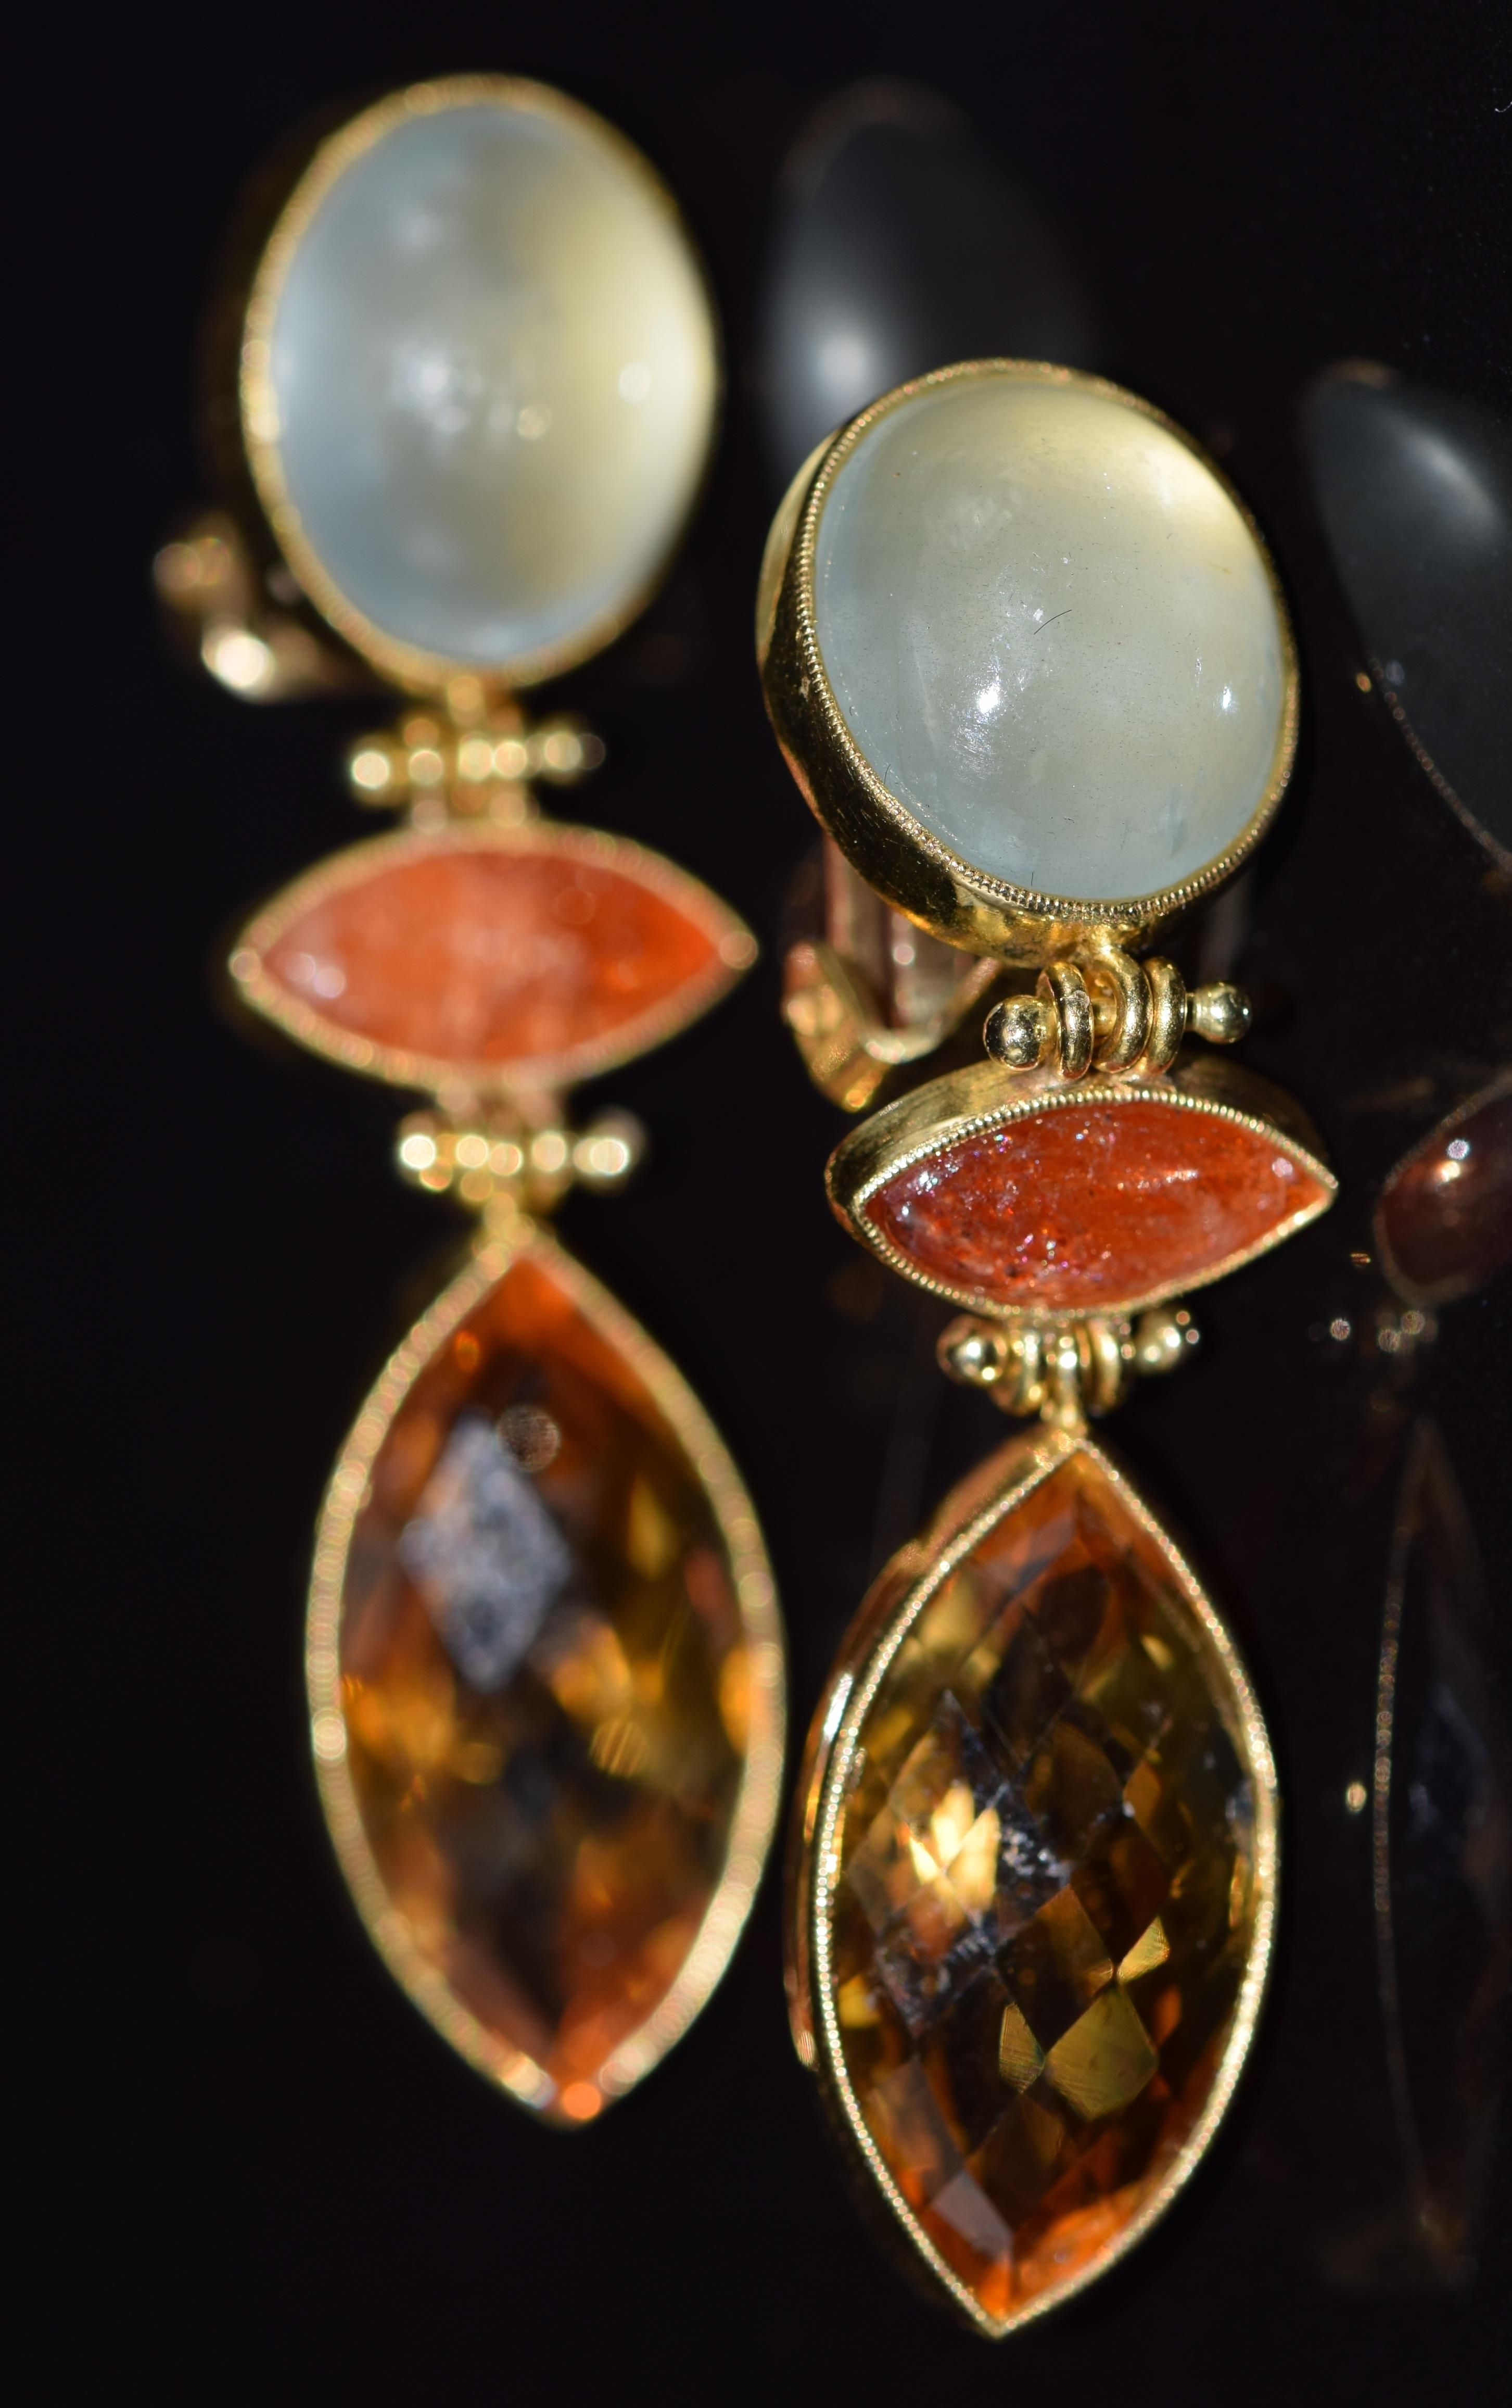 A pair of 18ct gold earrings set with citrine, chrysoberyl and sunstone, 13.5g